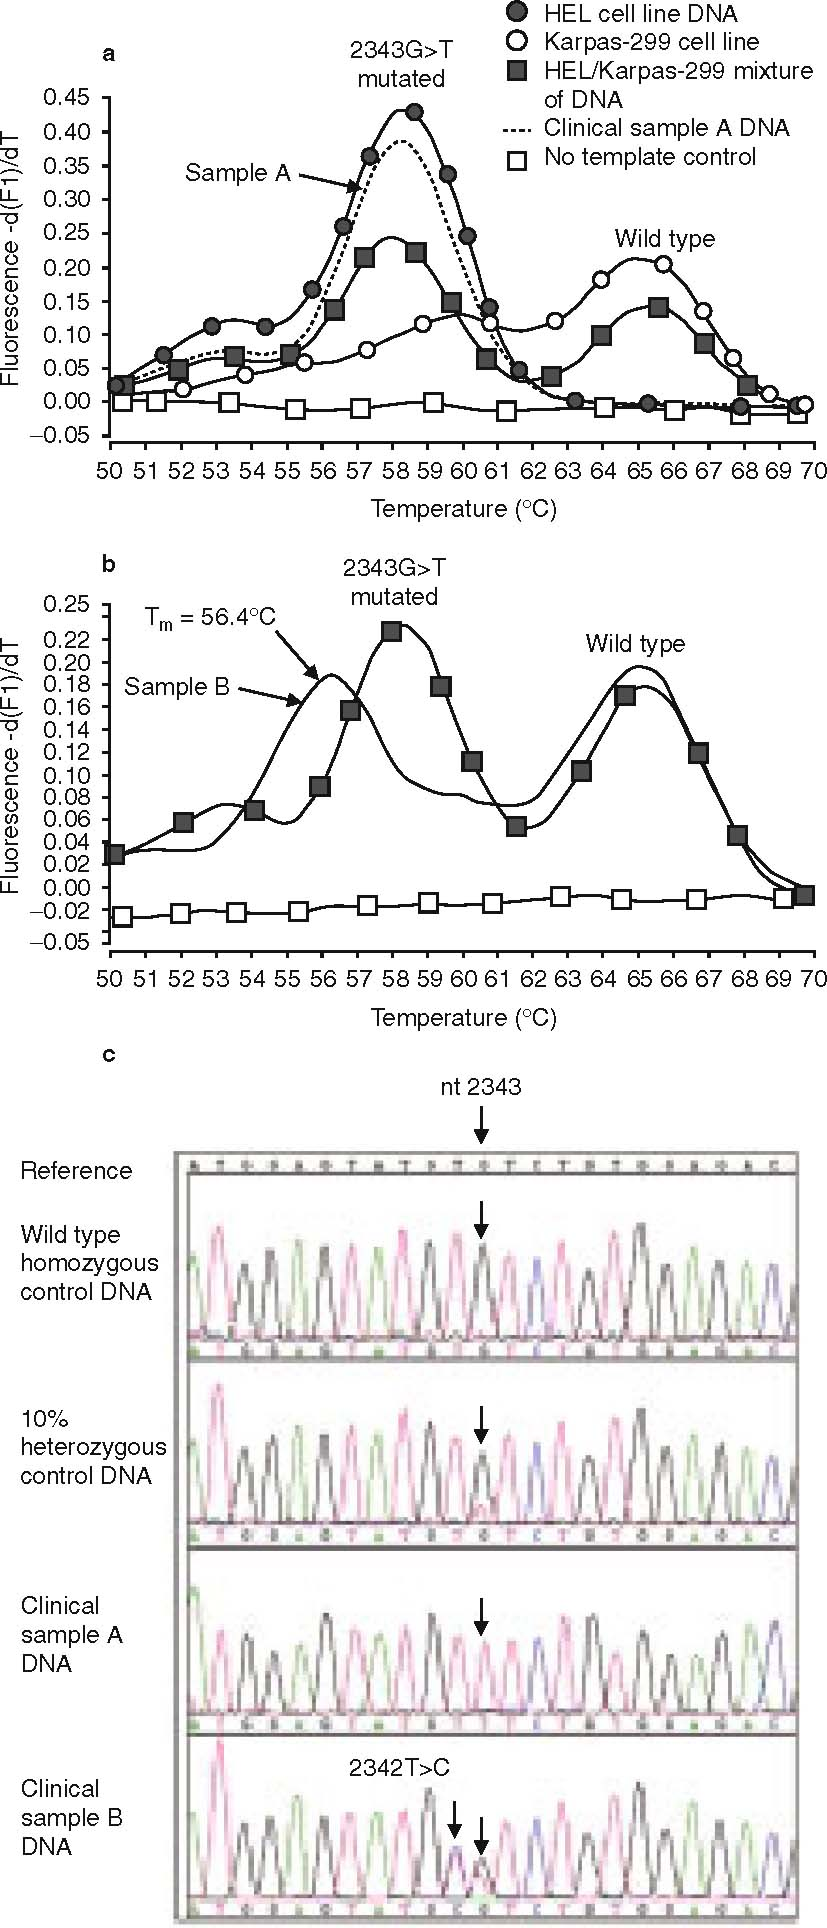 Detection Of Acquired Janus Kinase 2 V617f Mutation In Myeloproliferative Disorders By Fluorescence Melting Curve Analysis Springerlink